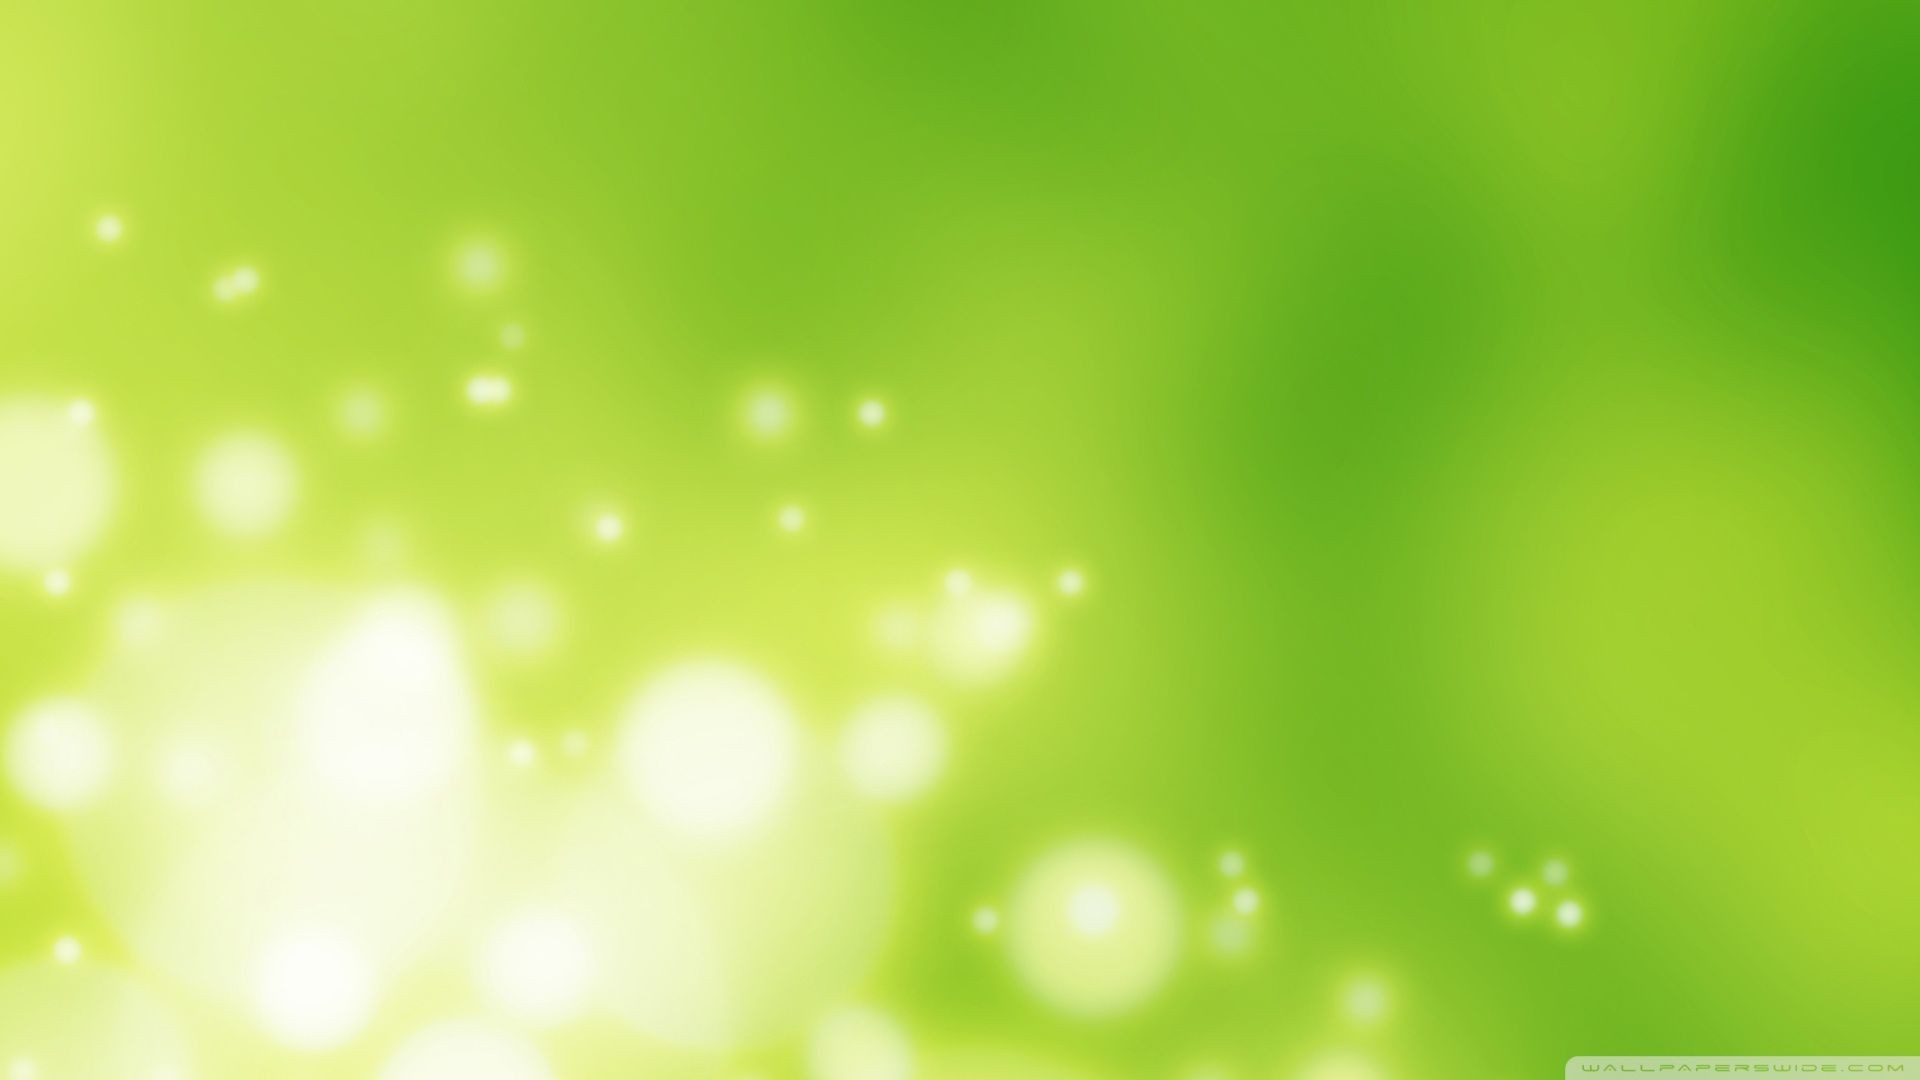 lime green apple wallpaper. 1920x1080 wallpapers for \u003e lime green background wallpaper apple